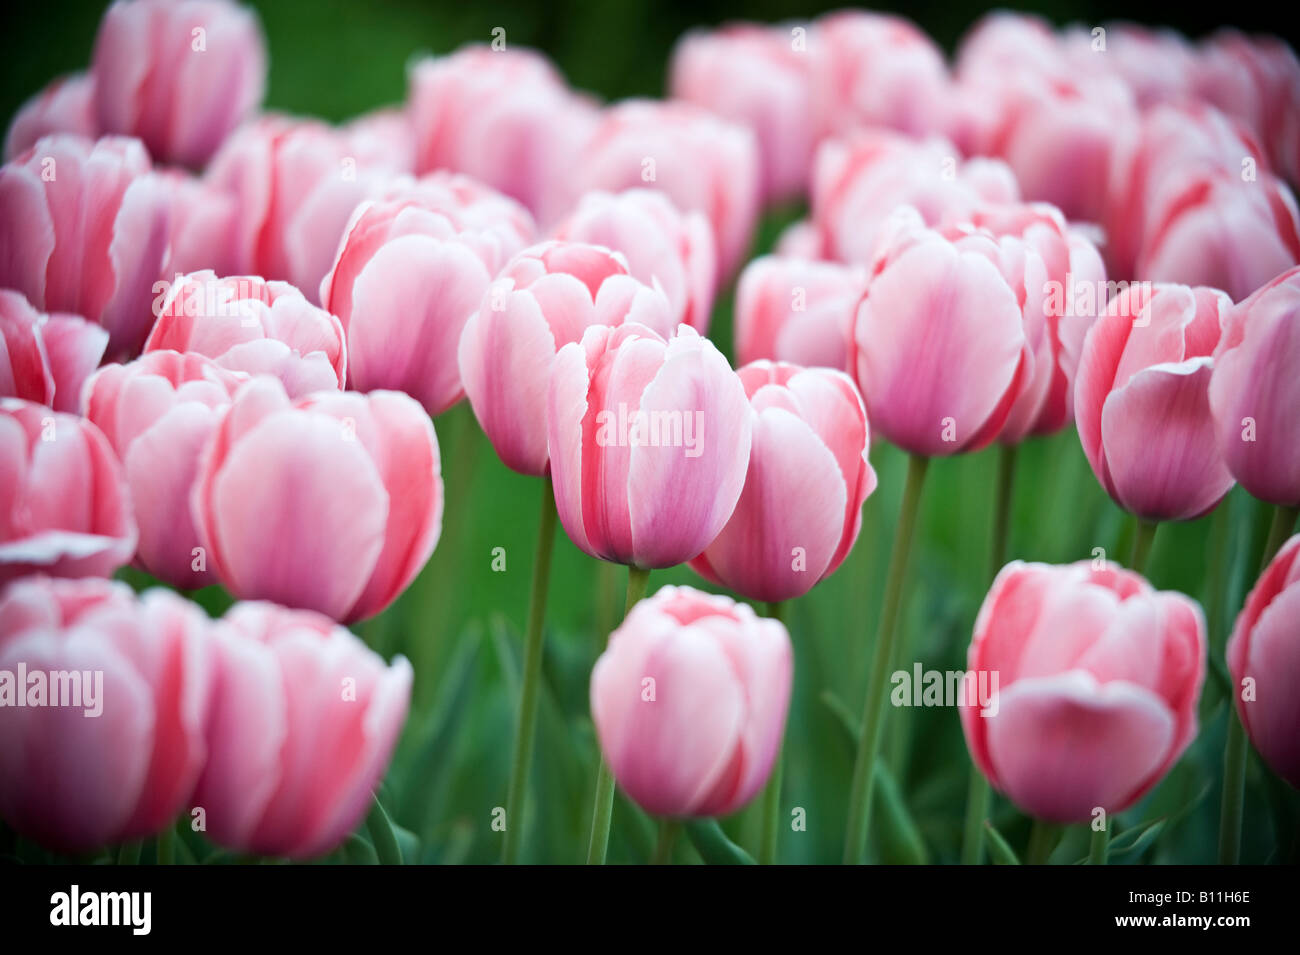 Spring tulips in Broklyn New York - Stock Image